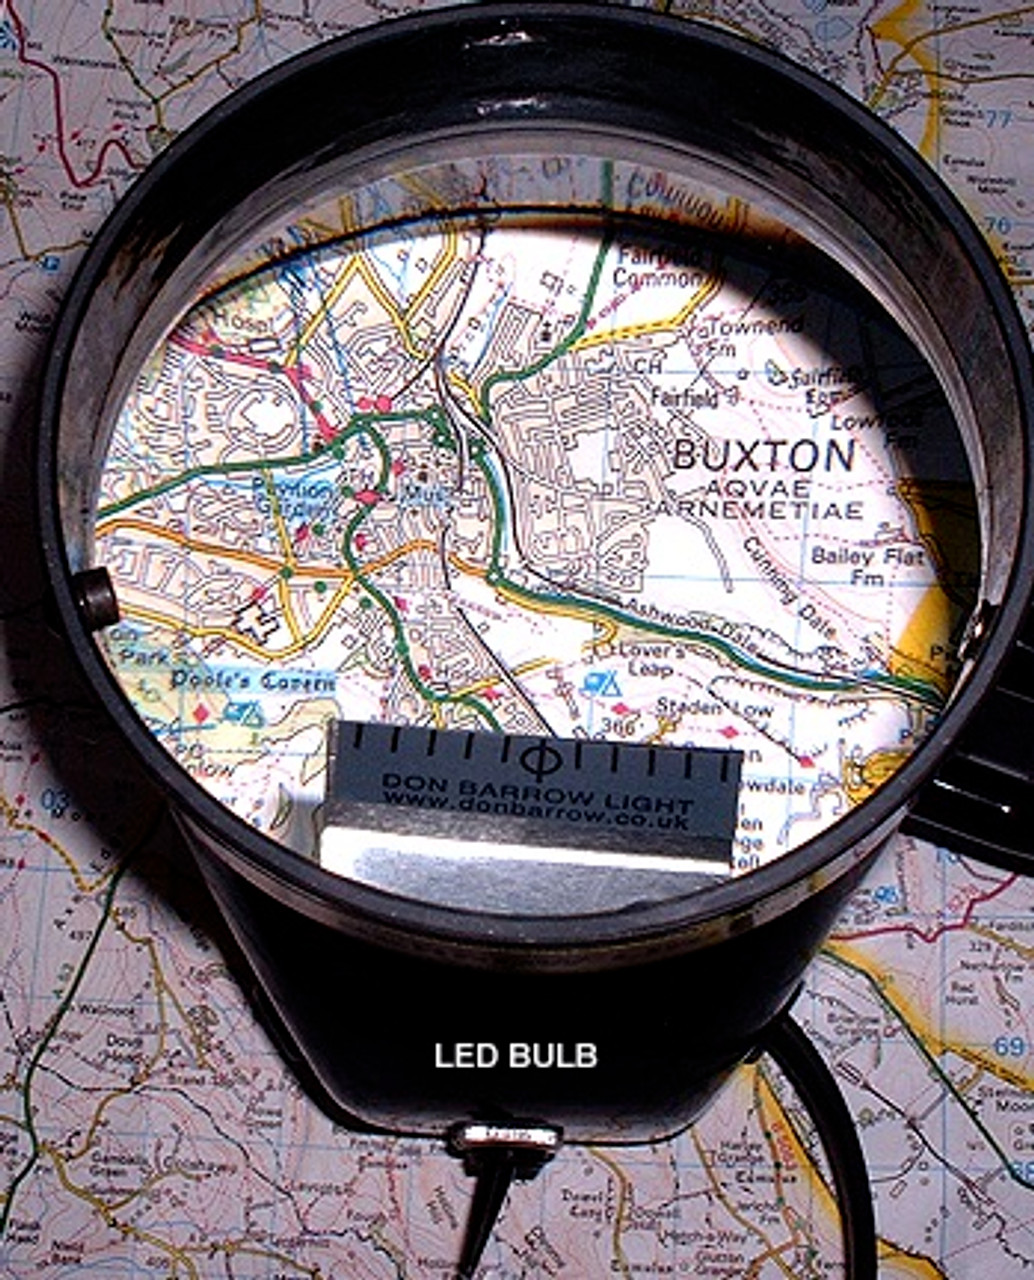 Don Barrow DB2 Map Magnifier